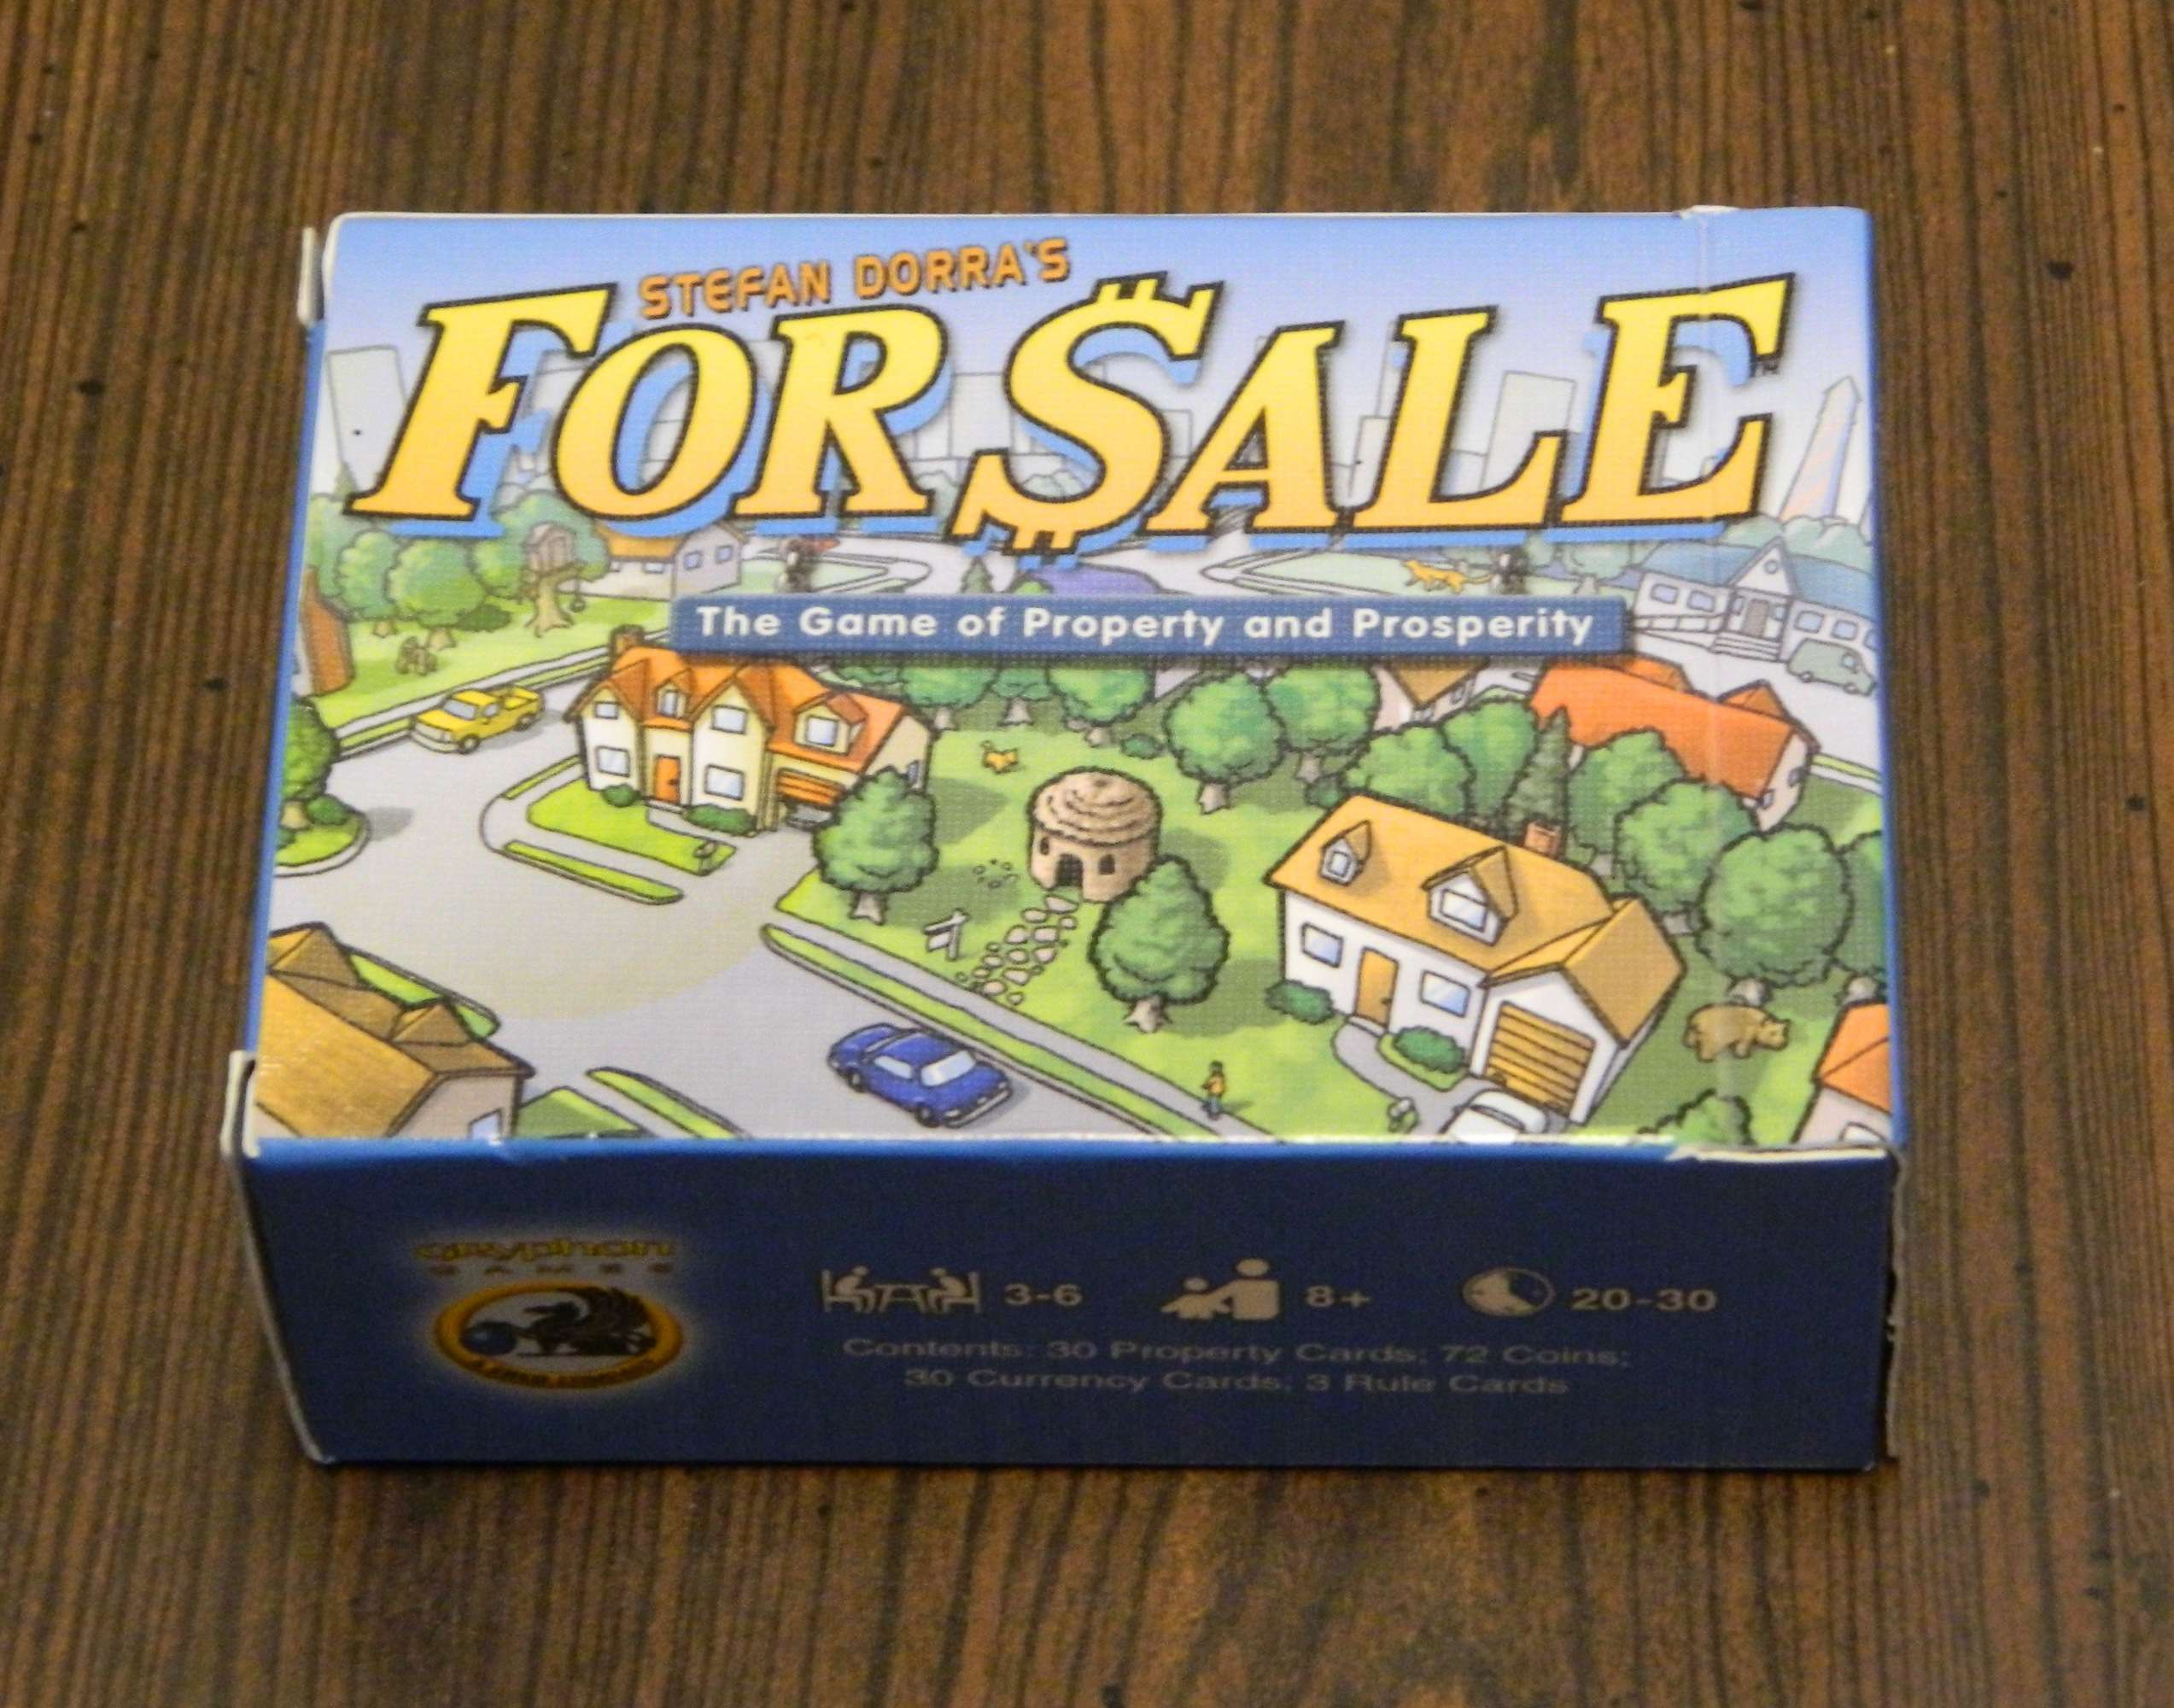 For Sale Card Game Review And Instructions